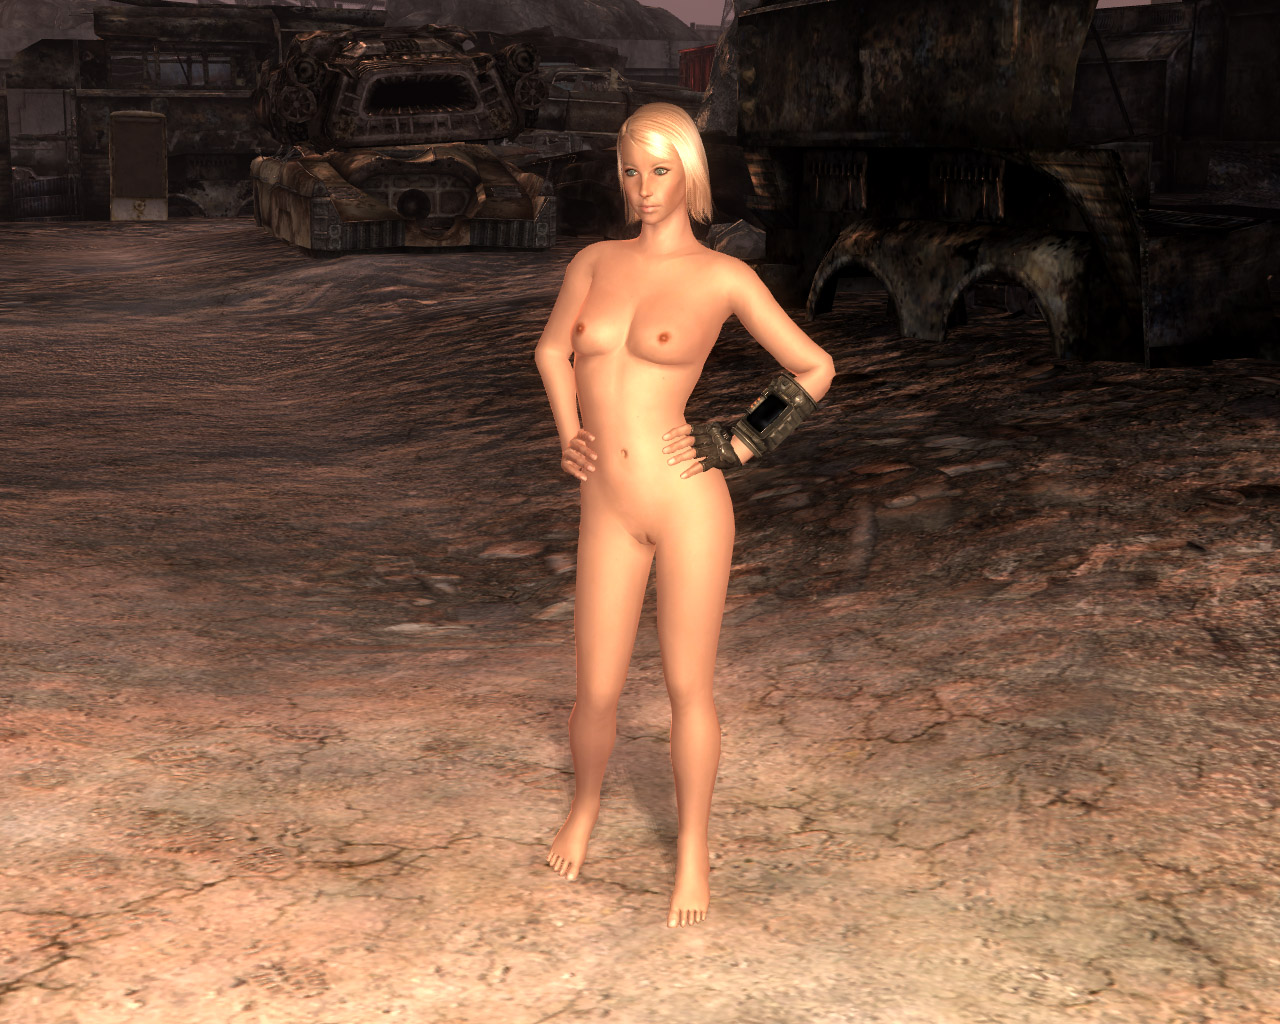 Fallout nude body replacer porncraft video